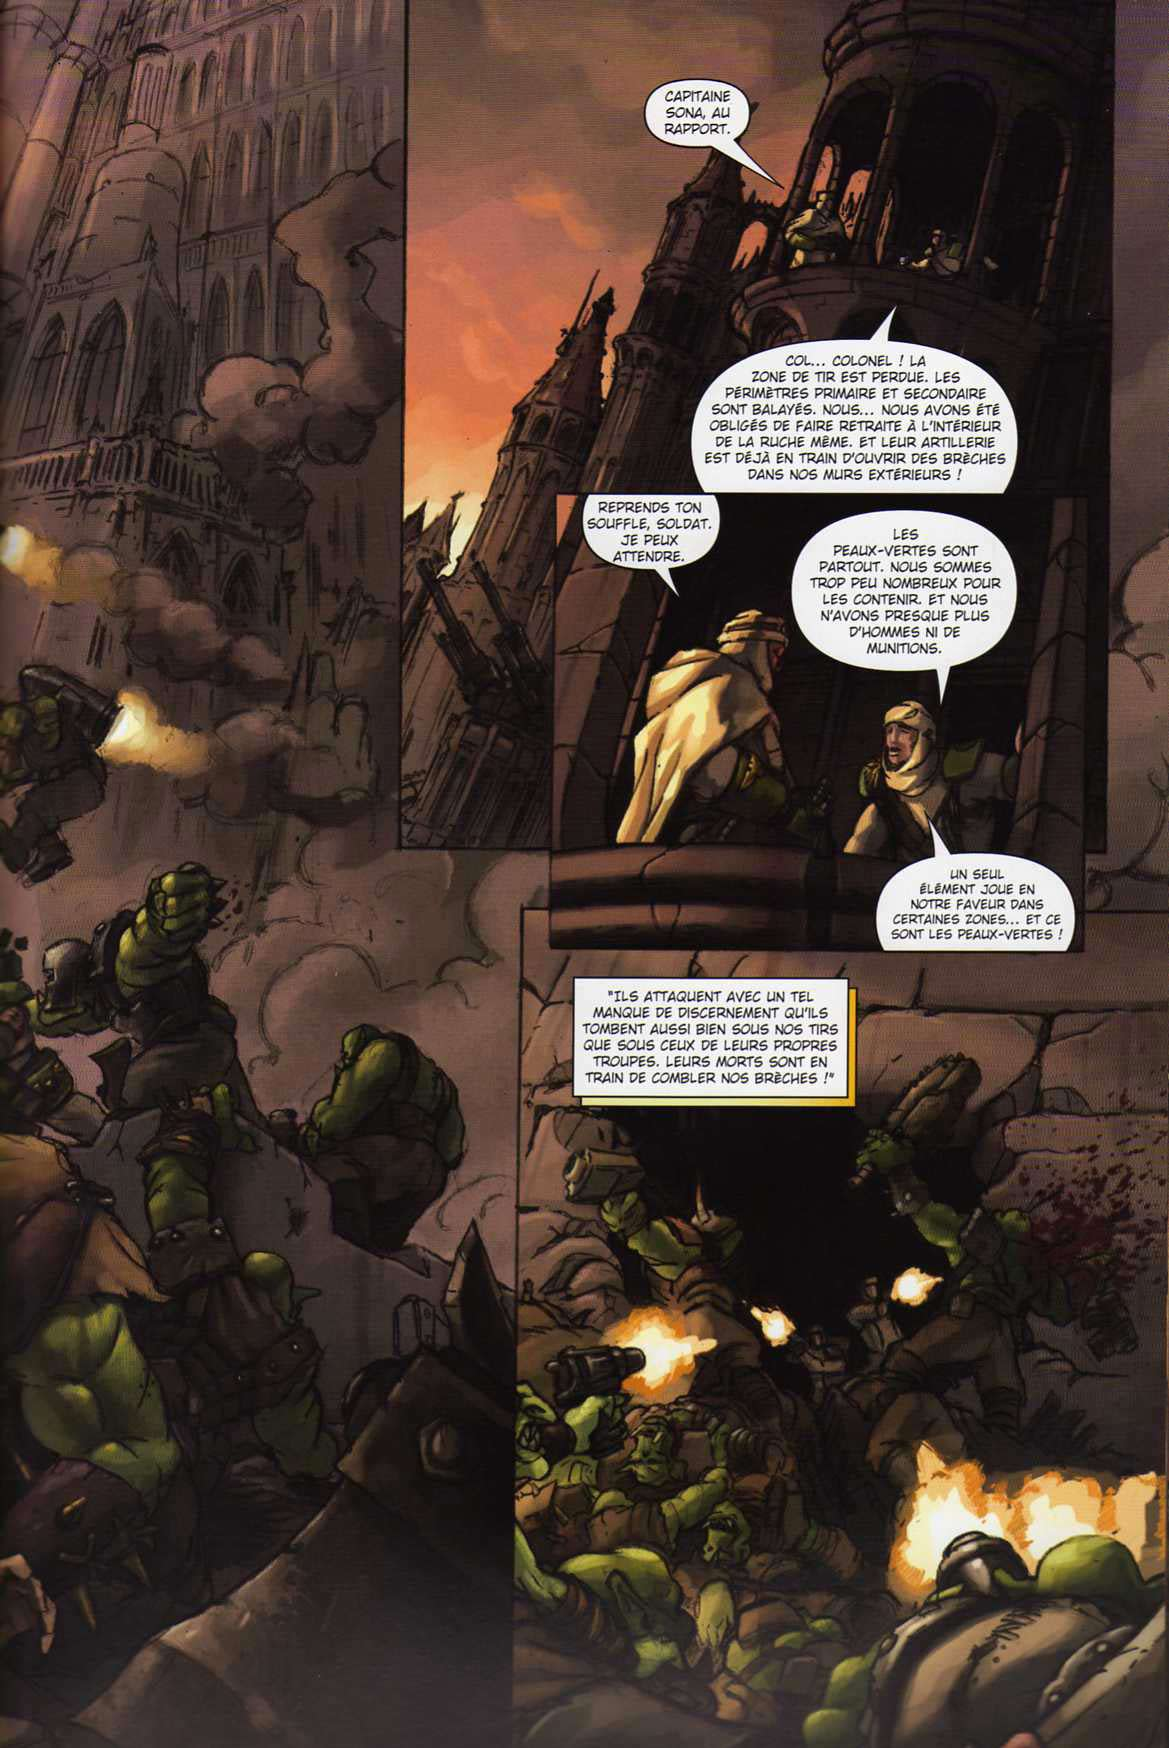 T3 : Tonnerre de sang - Warhammer 40.000 (page 3)